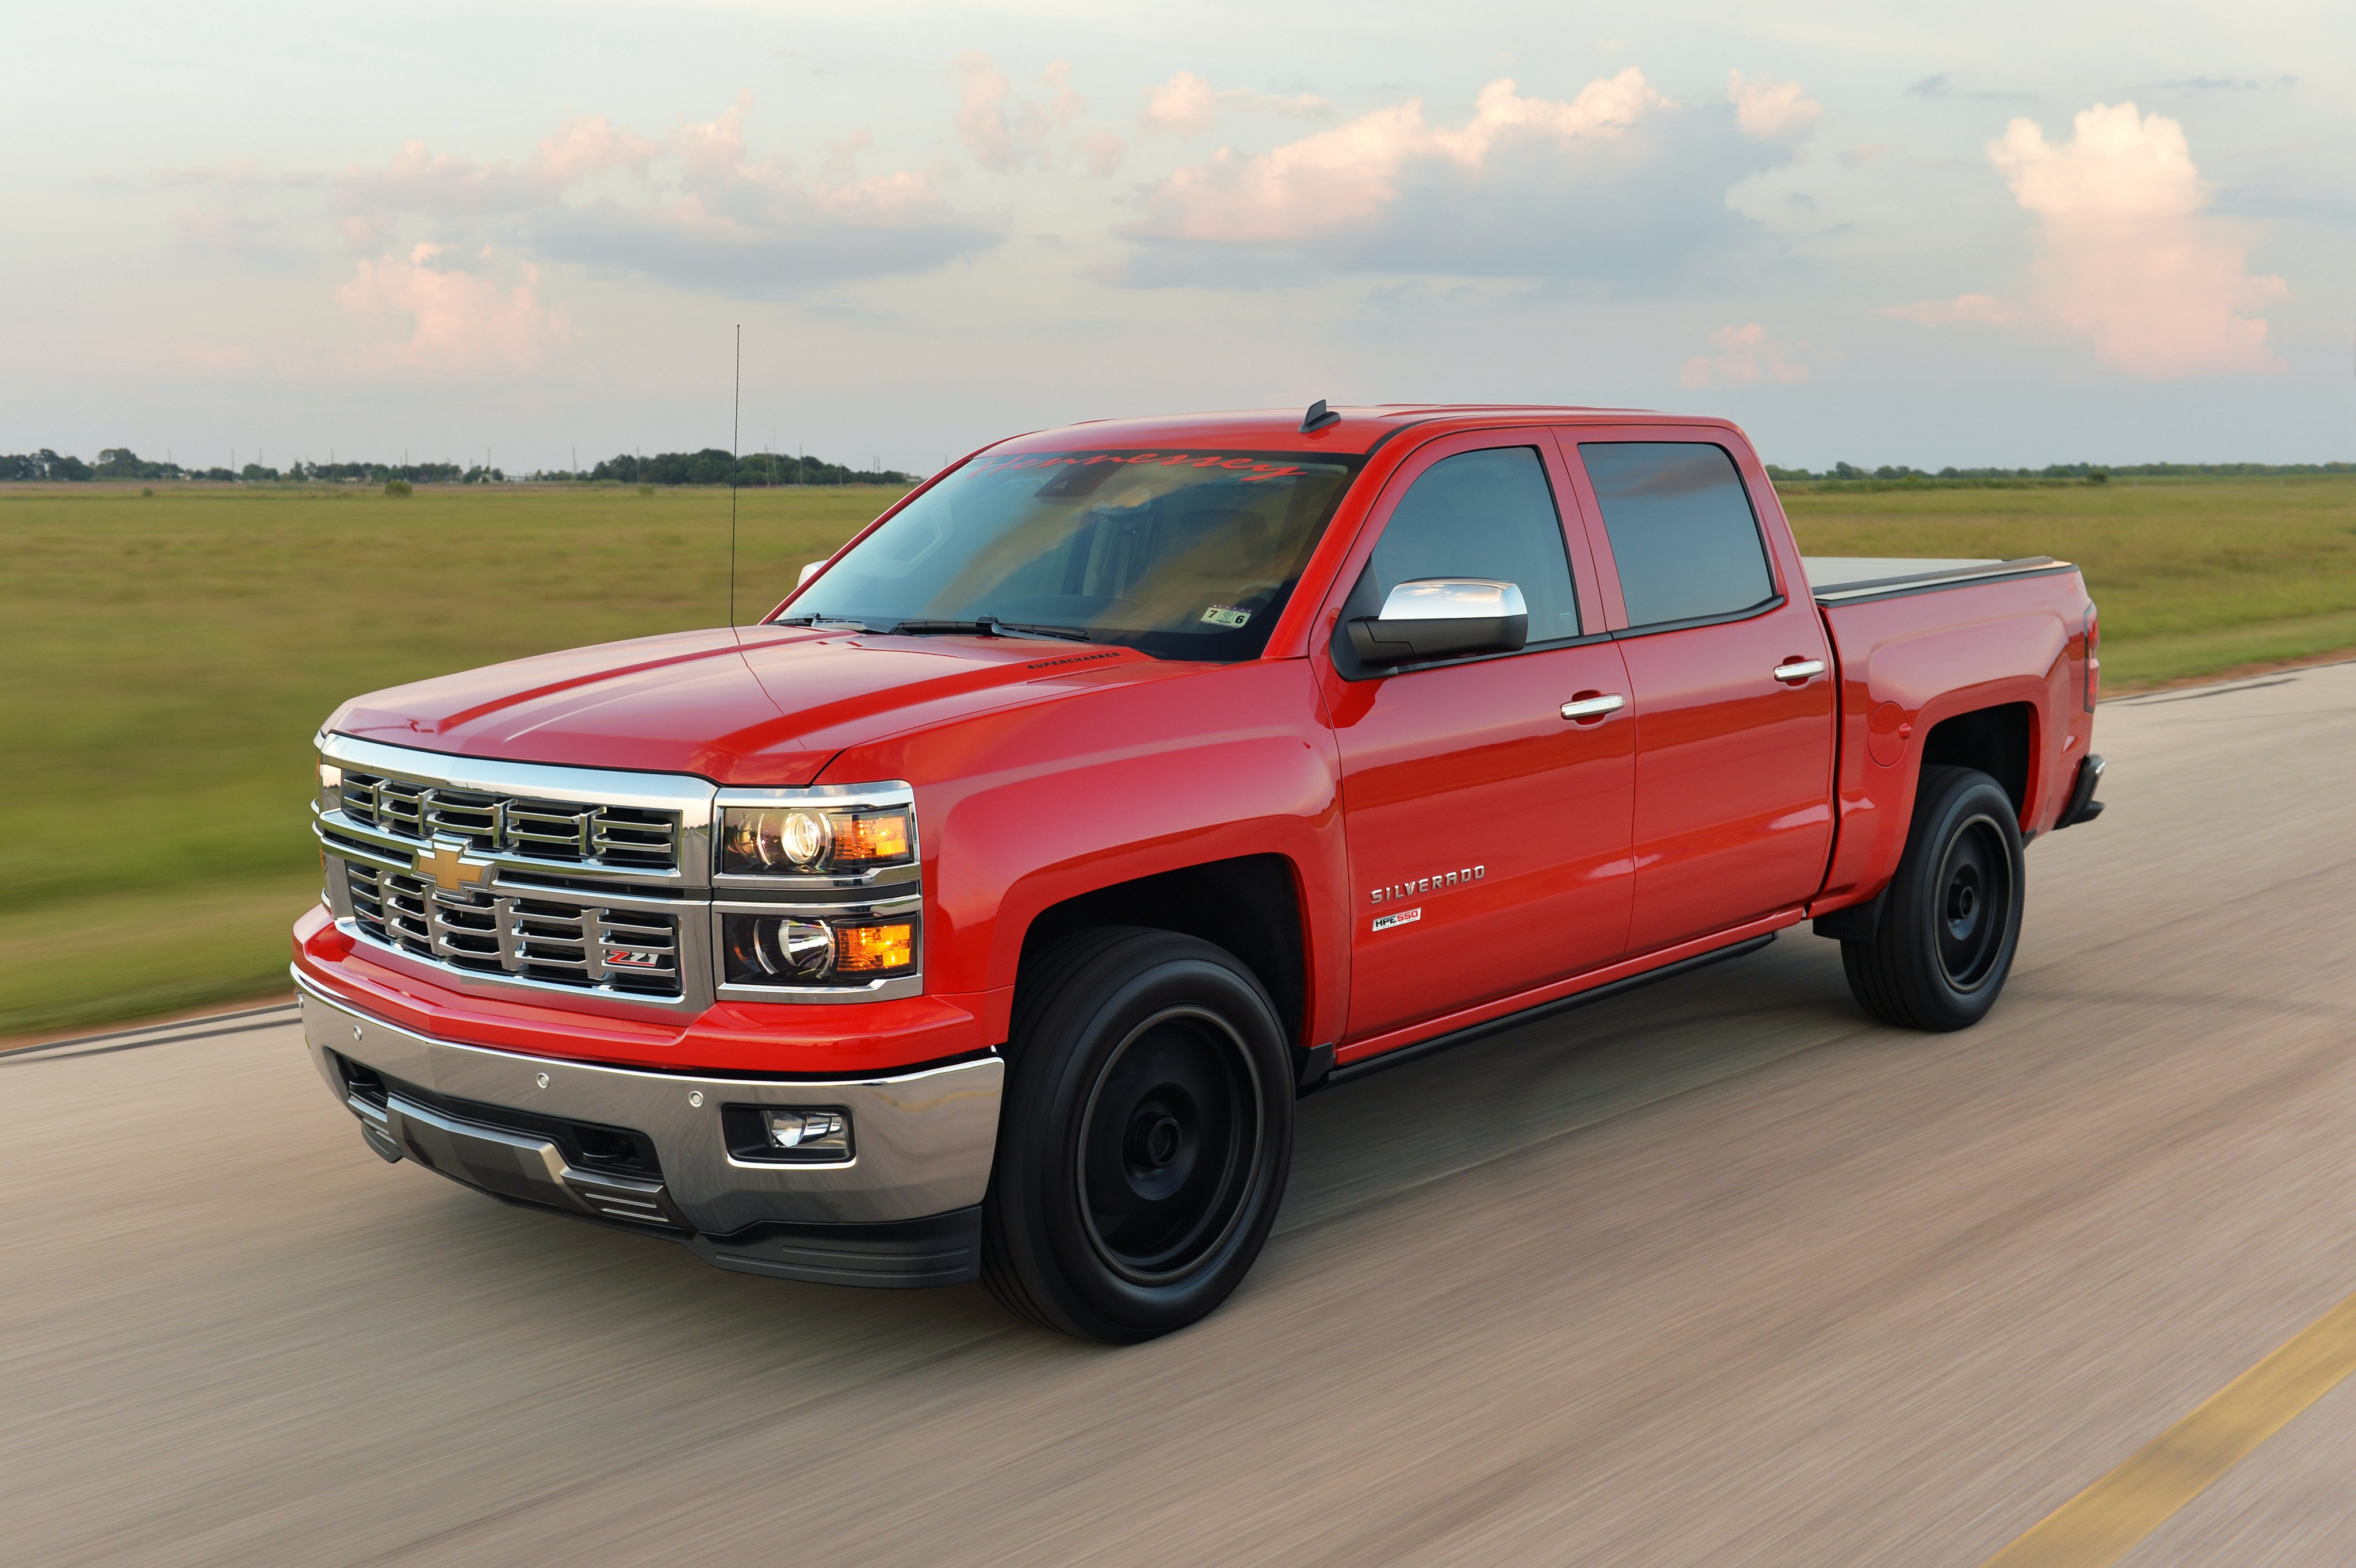 2015 hennessey chevrolet silverado z71 hpe550 pickup muscle tuning wallpaper 4096x2726. Black Bedroom Furniture Sets. Home Design Ideas